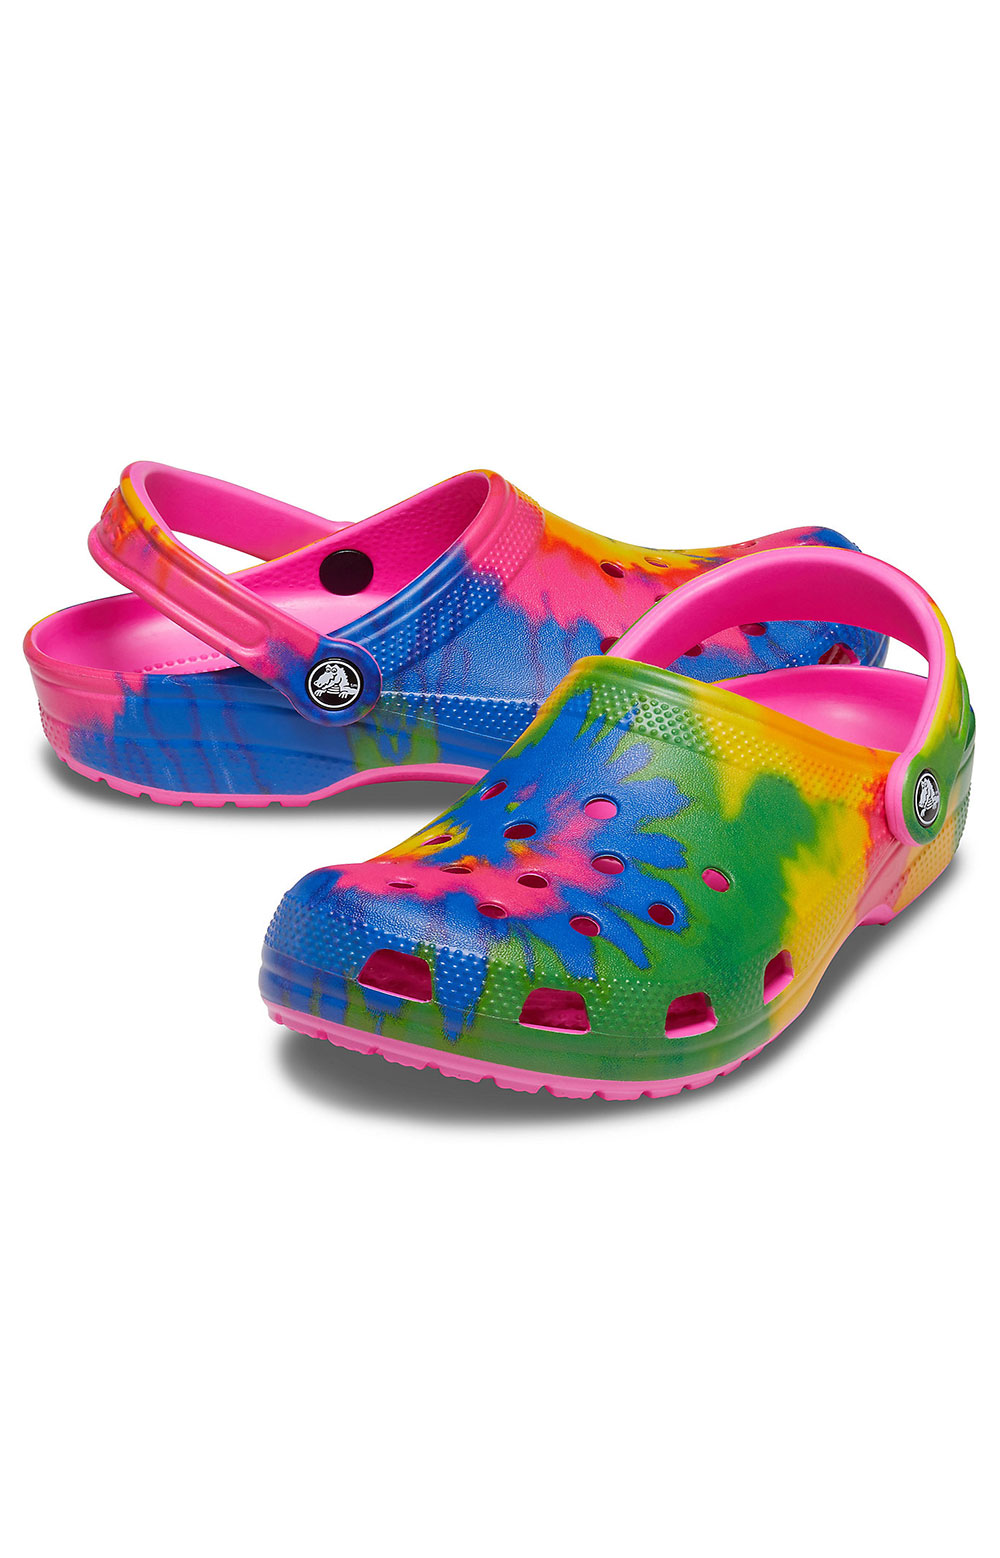 Classic Tie-Dye Graphic Clogs - Electric Pink/Multi 4